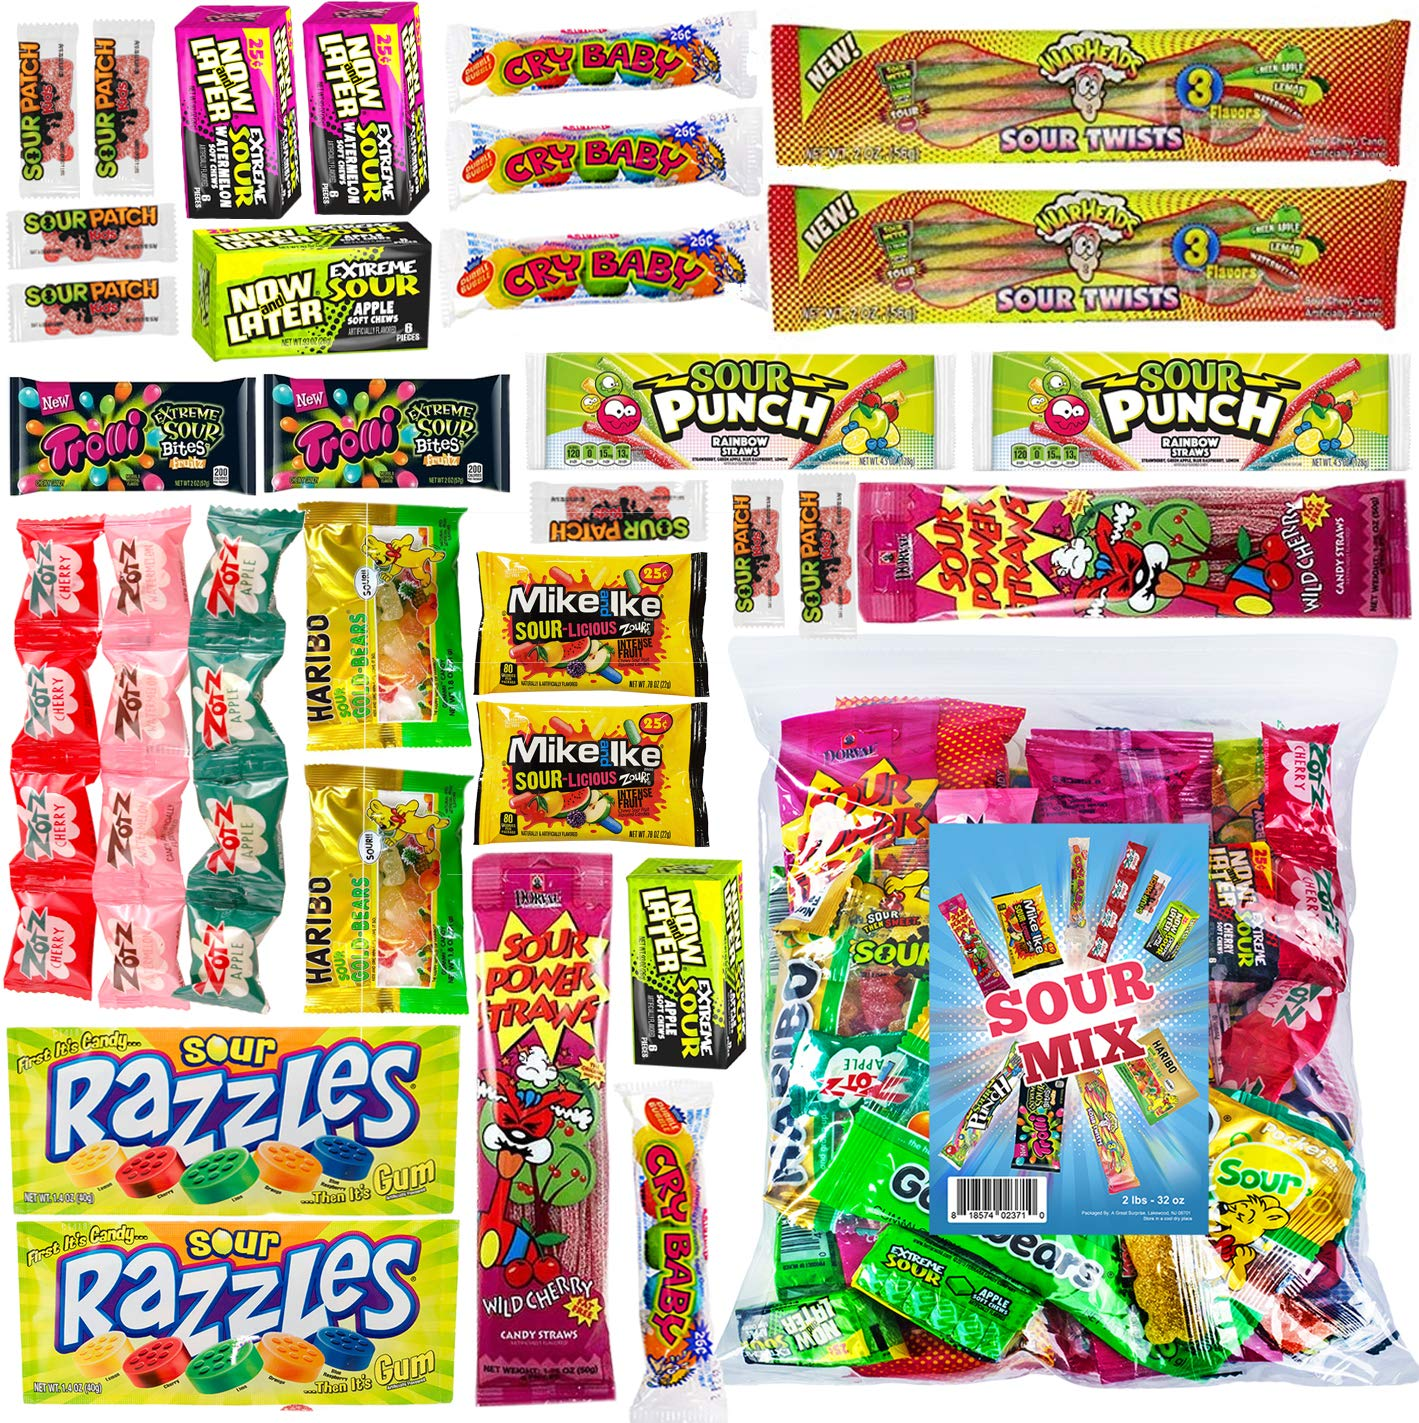 Halloween Candy - Sour Candy Bulk - Sour Candy Assortment - Bulk Sour Candy - Mix Sour Candy - Sour Candy Mix - Sour Candy Variety - Bulk Candy - 2 Pounds by A Great Surprise